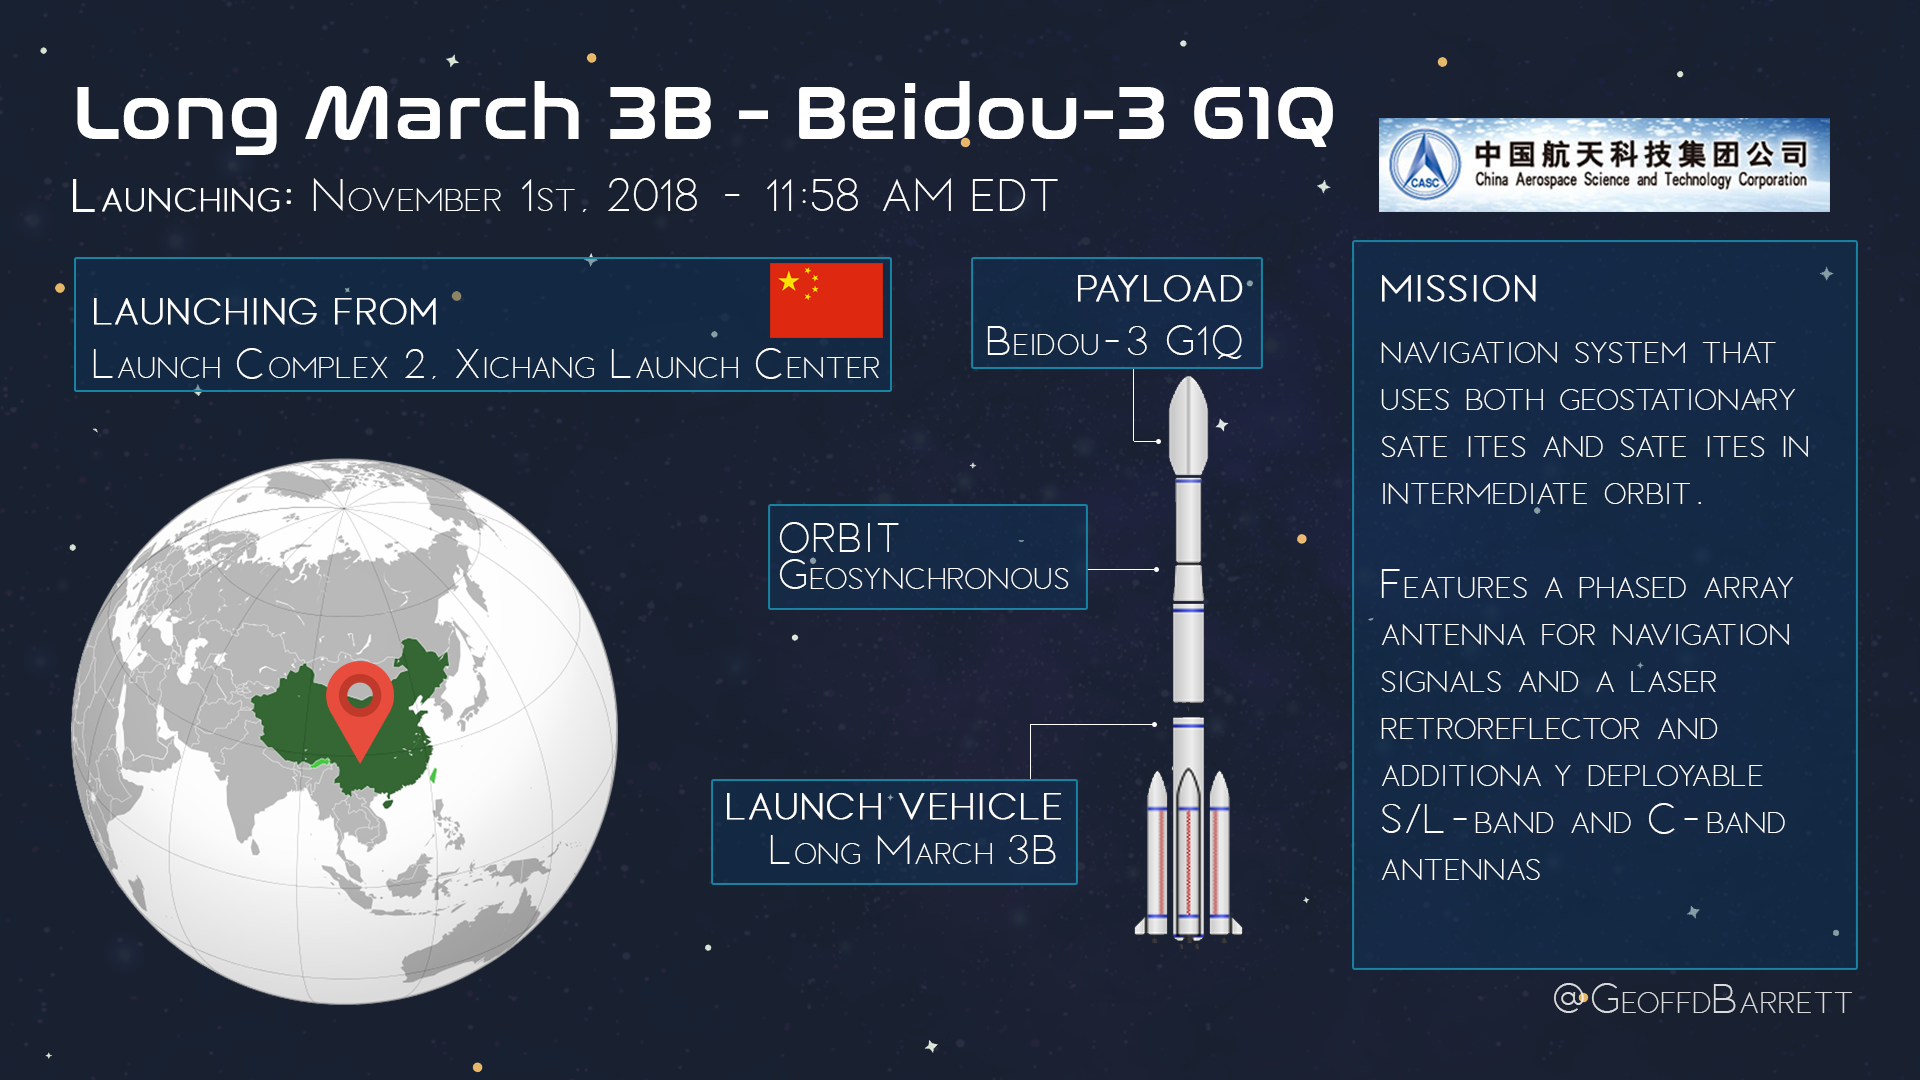 Long March 3B / BeiDou-3 G1Q